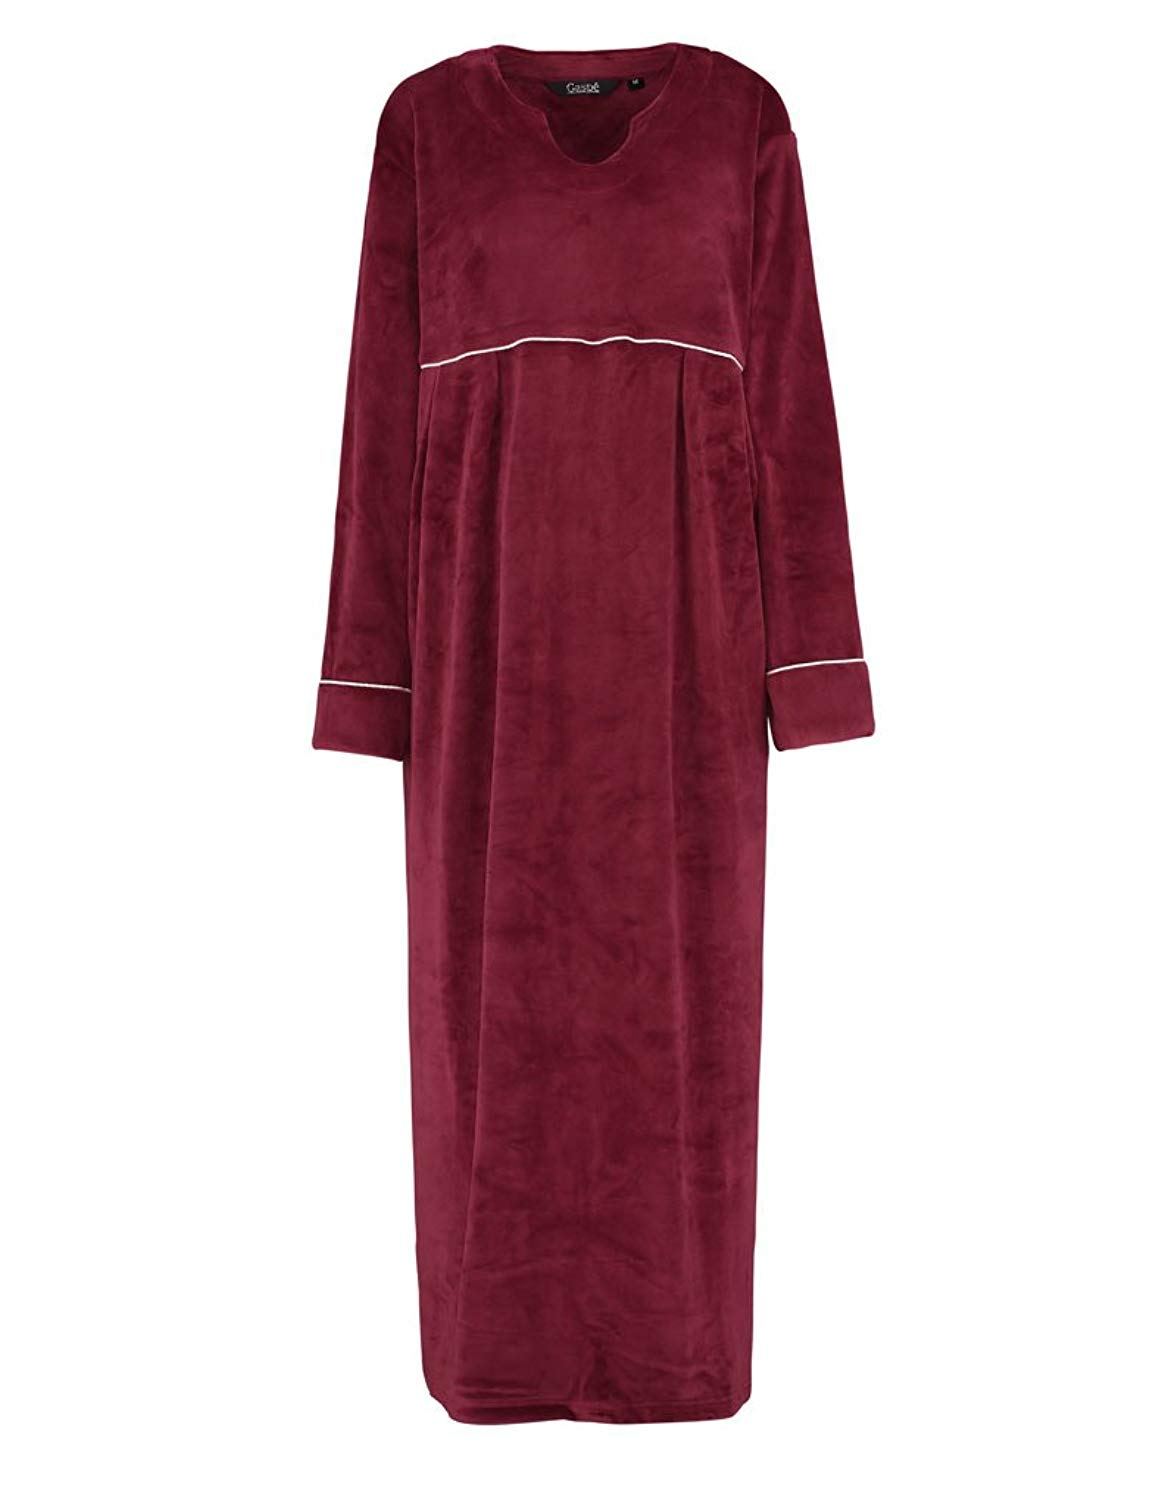 a5f1bed39b Get Quotations · Slenderella GL8748 Women s Rasberry Red Long Sleeve  Dressing Gown Robe